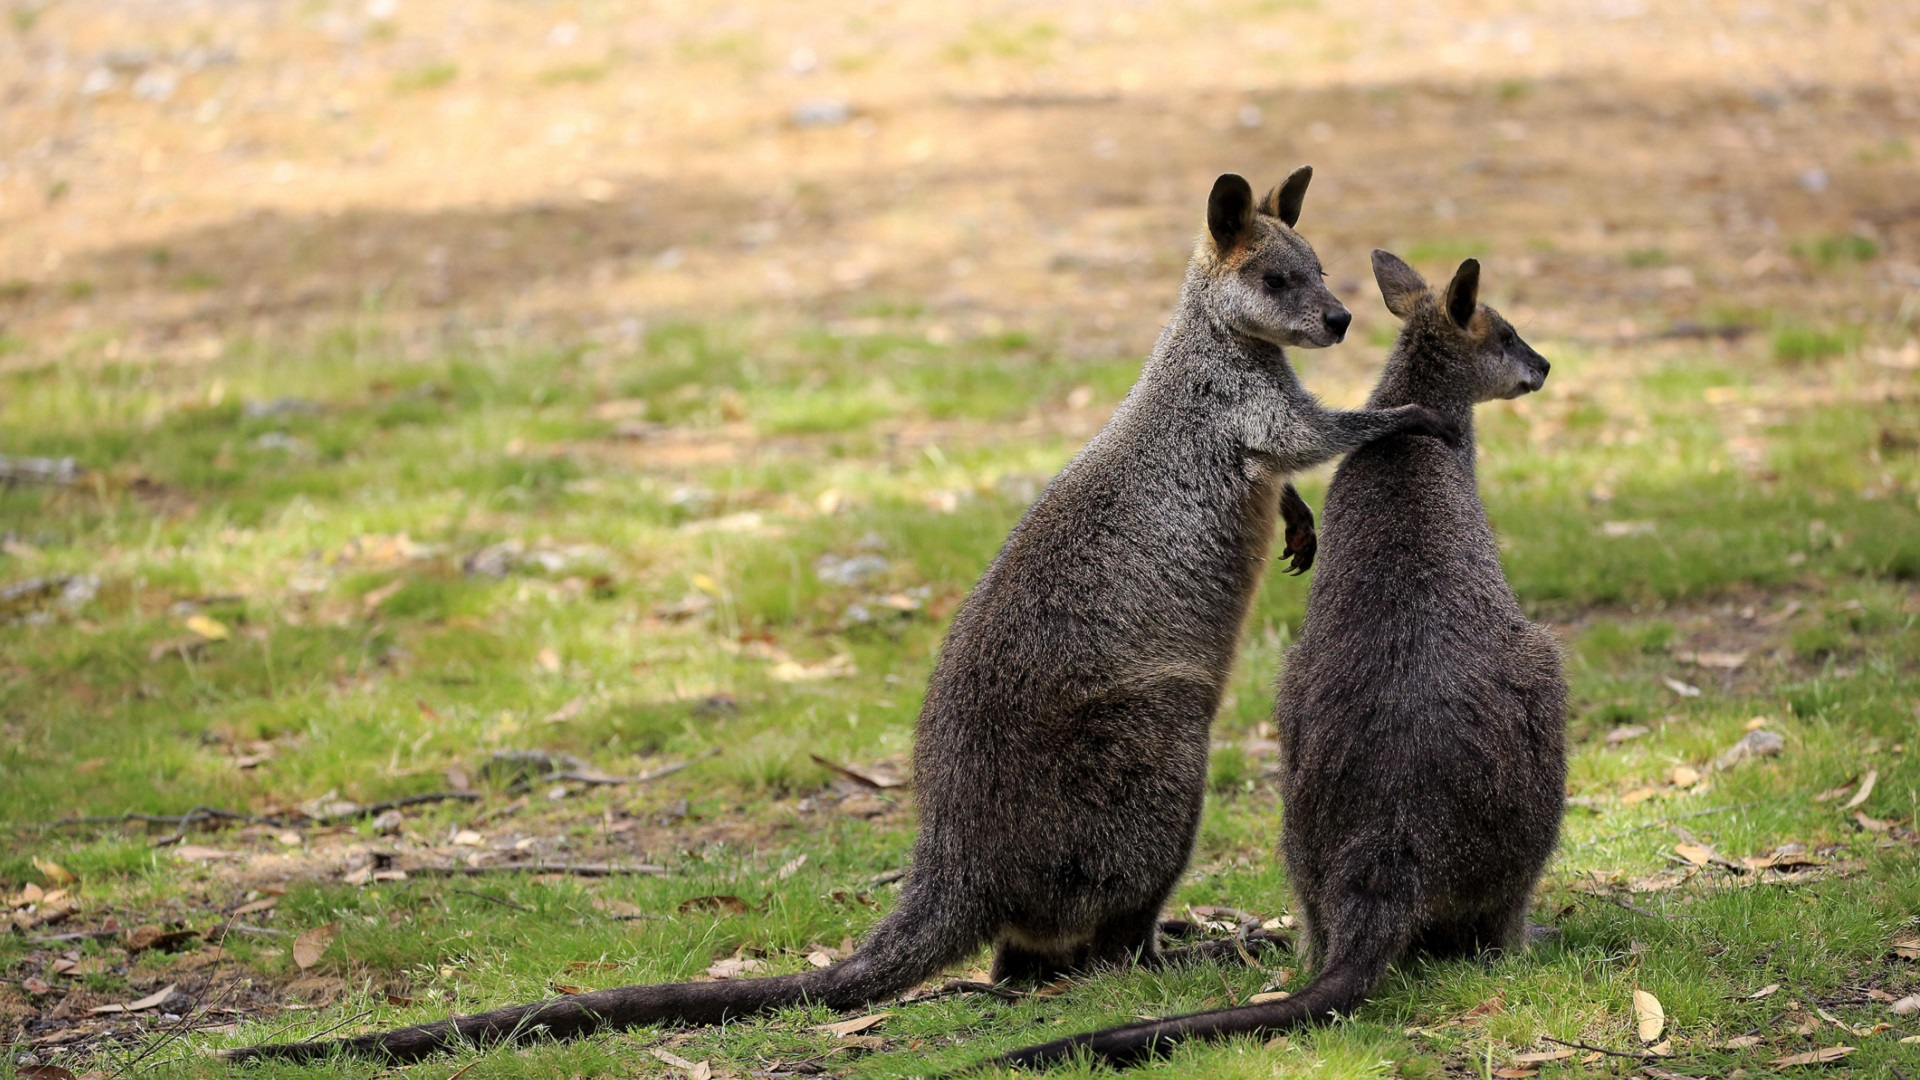 swamp wallabies_wallaby_marsupial